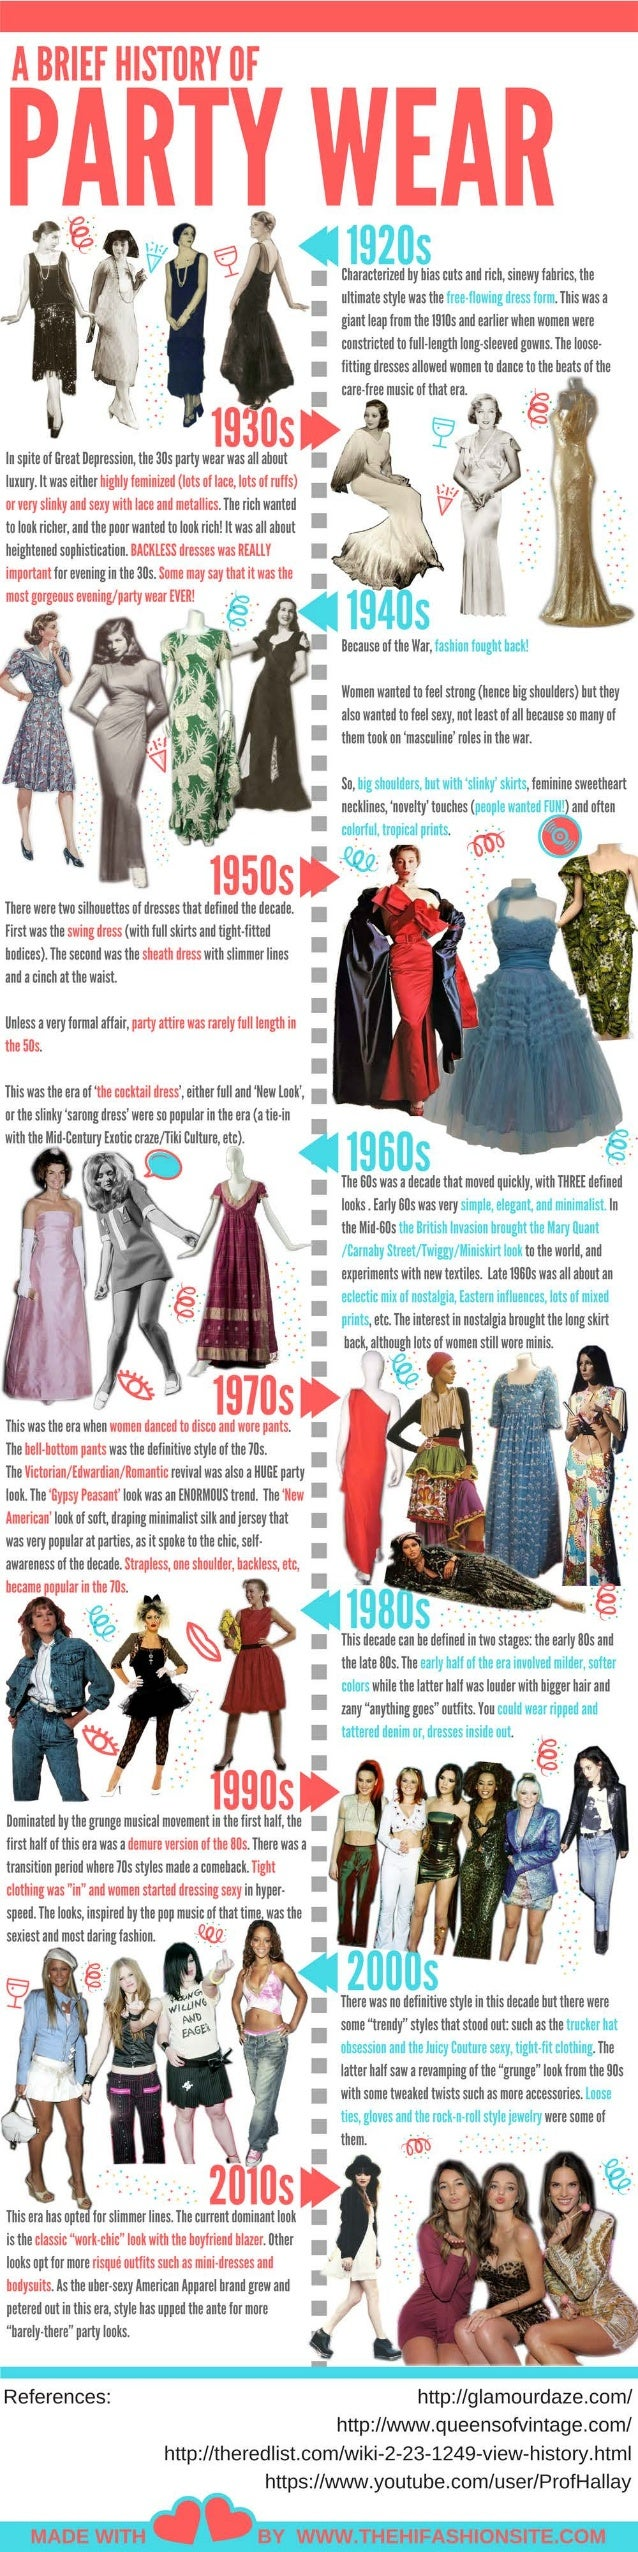 A Brief History of Women's Party Wear and Fashion